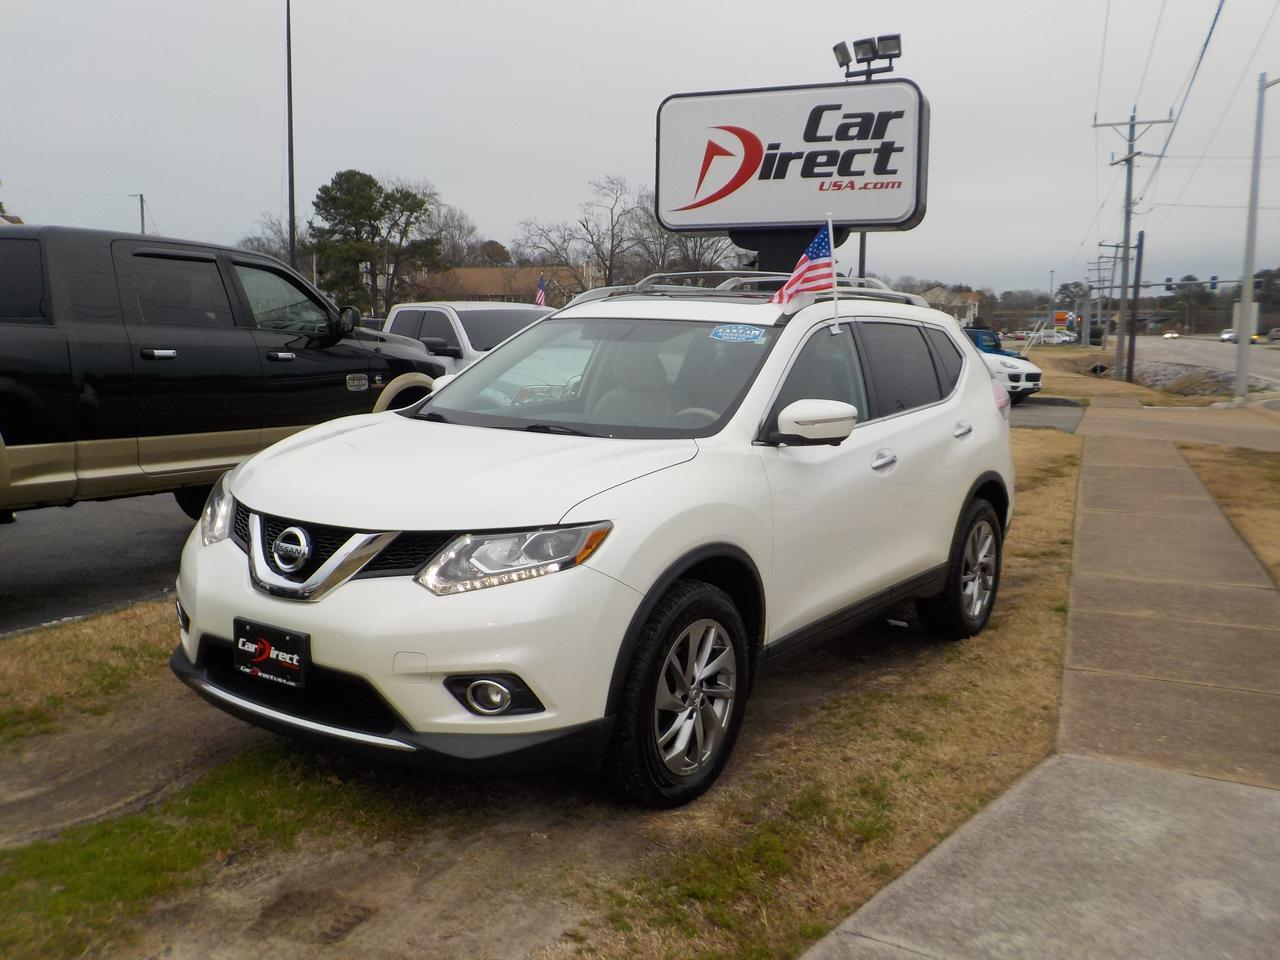 2015 NISSAN ROGUE SL AWD, ONE OWNER, LEATHER, HEATED SEATS, BOSE SOUND SYSTEM, PANO ROOF, BACKUP CAM, ONLY 79K MILES!